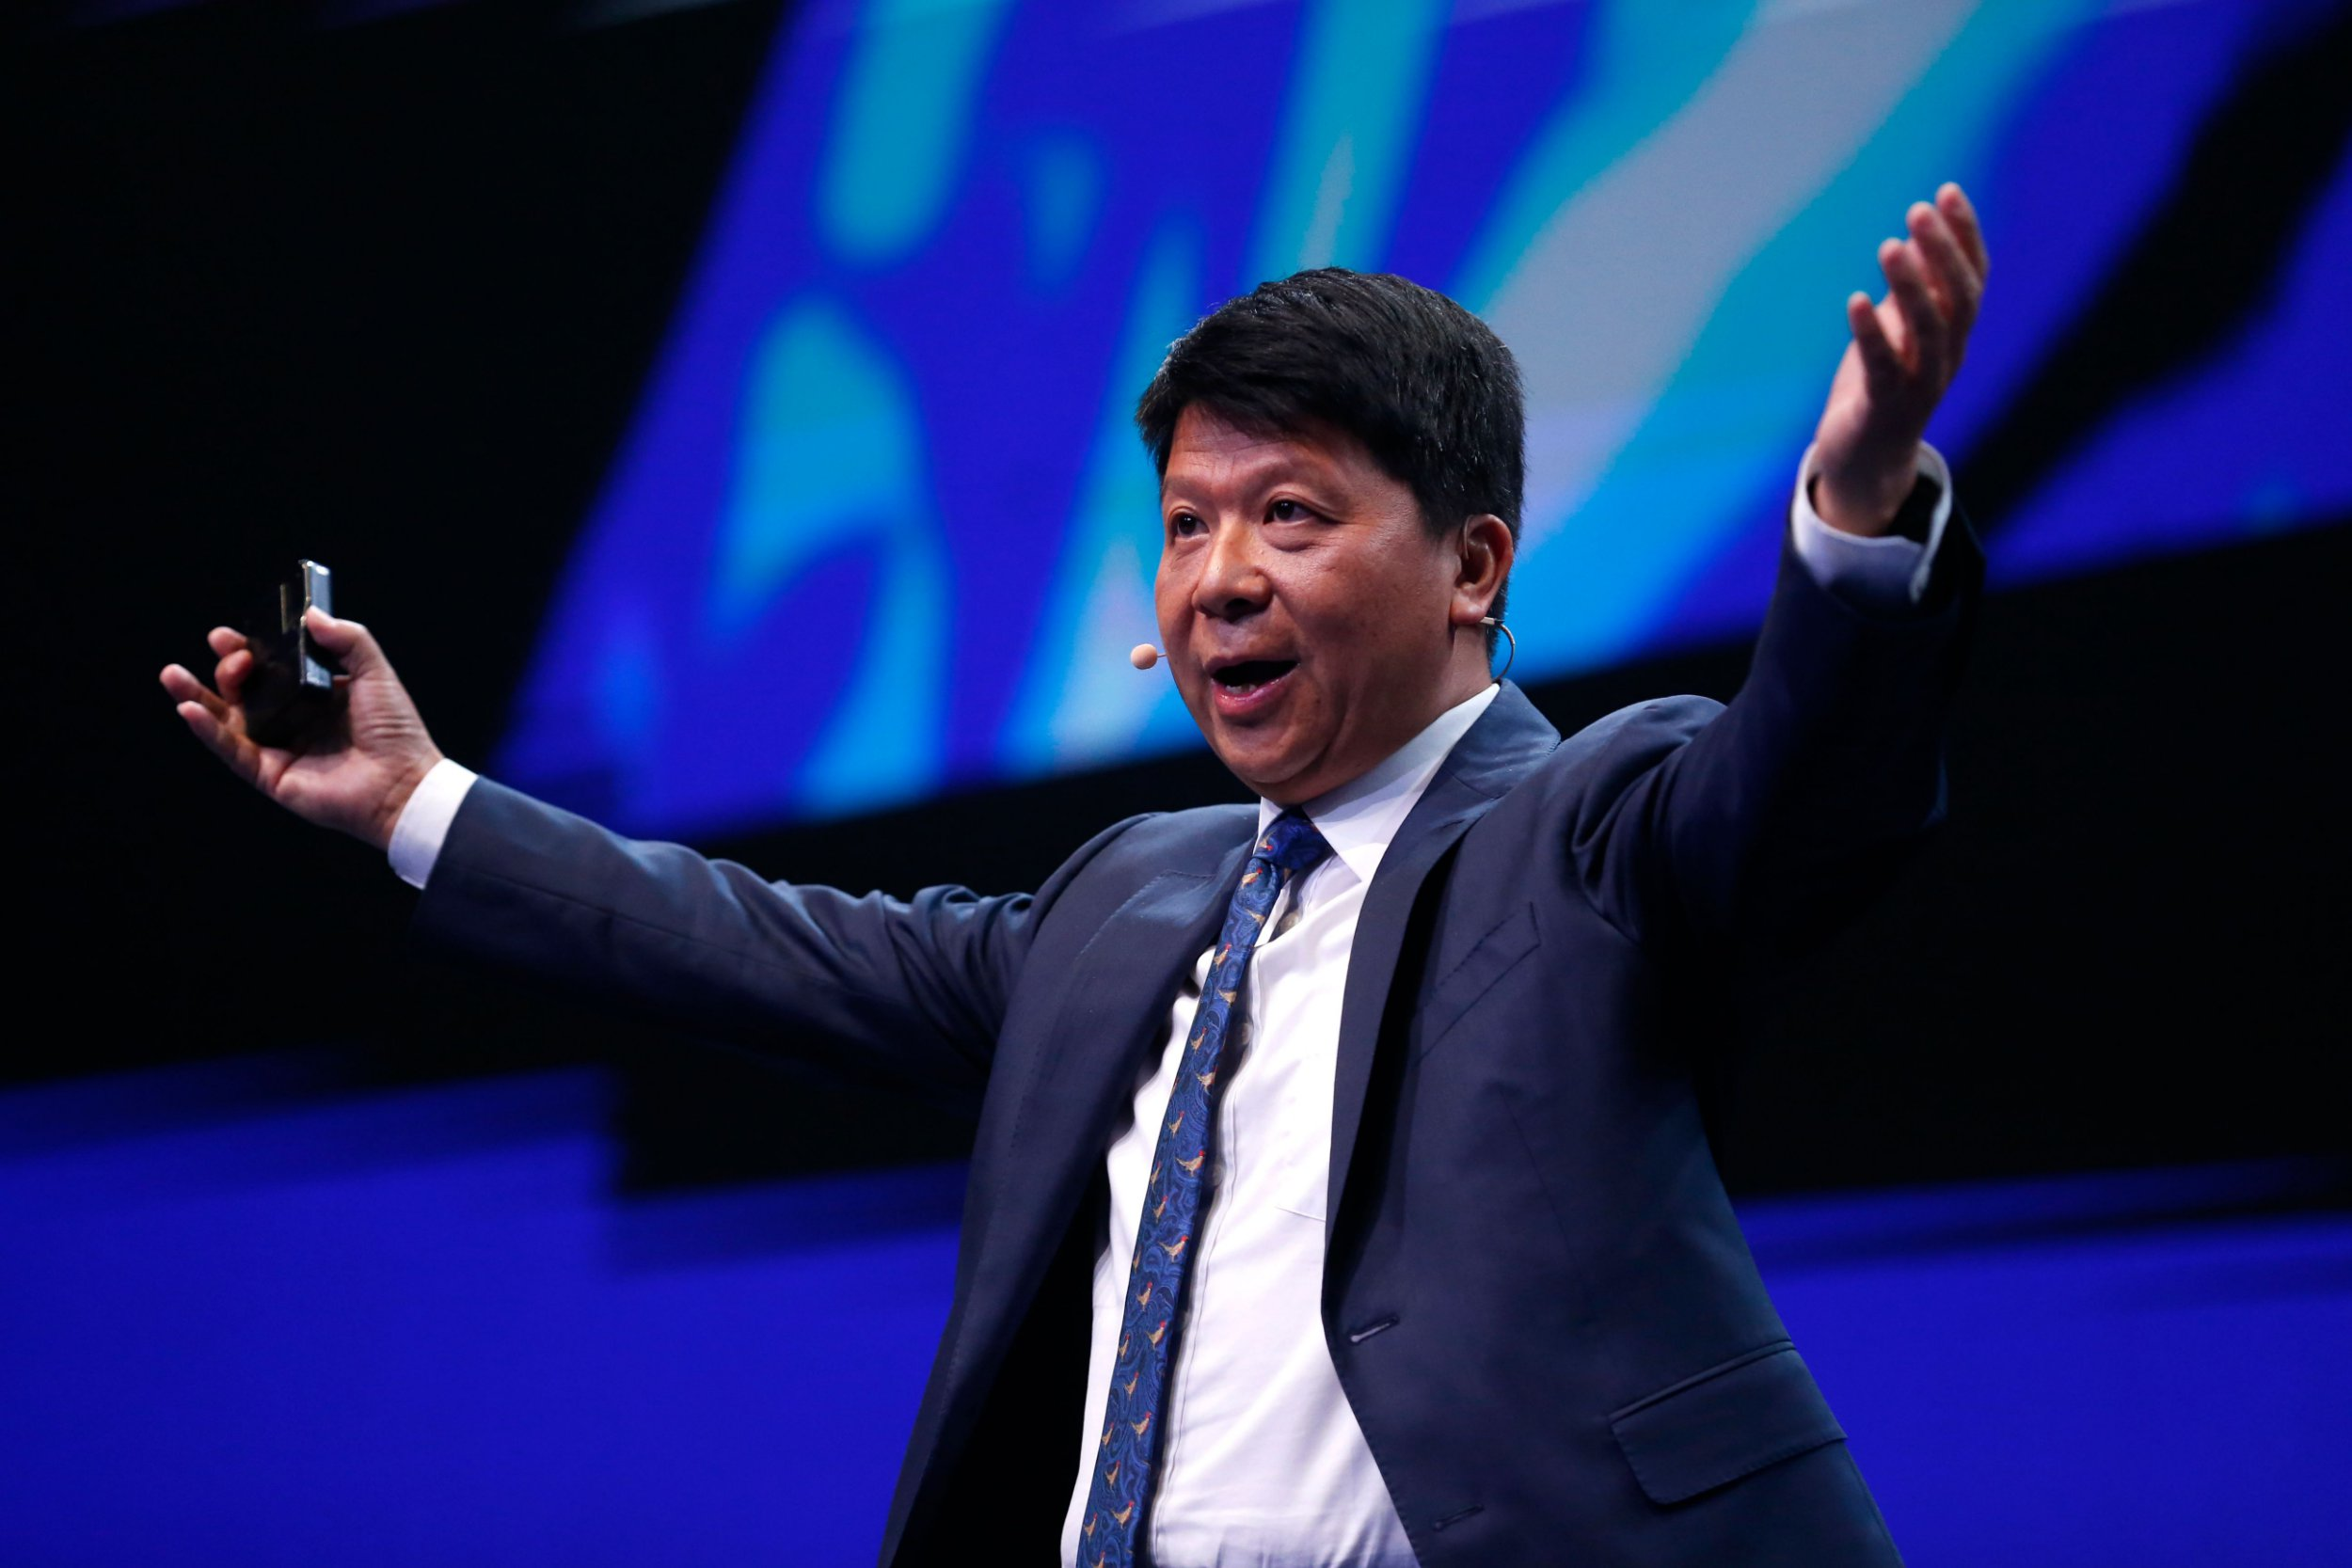 Huawei chairperson Guo Ping delivers a keynote speech at the Mobile World Congress (MWC) in Barcelona on February 26, 2019. - Phone makers will focus on foldable screens and the introduction of blazing fast 5G wireless networks at the world's biggest mobile fair as they try to reverse a decline in sales of smartphones. (Photo by Pau Barrena / AFP)PAU BARRENA/AFP/Getty Images